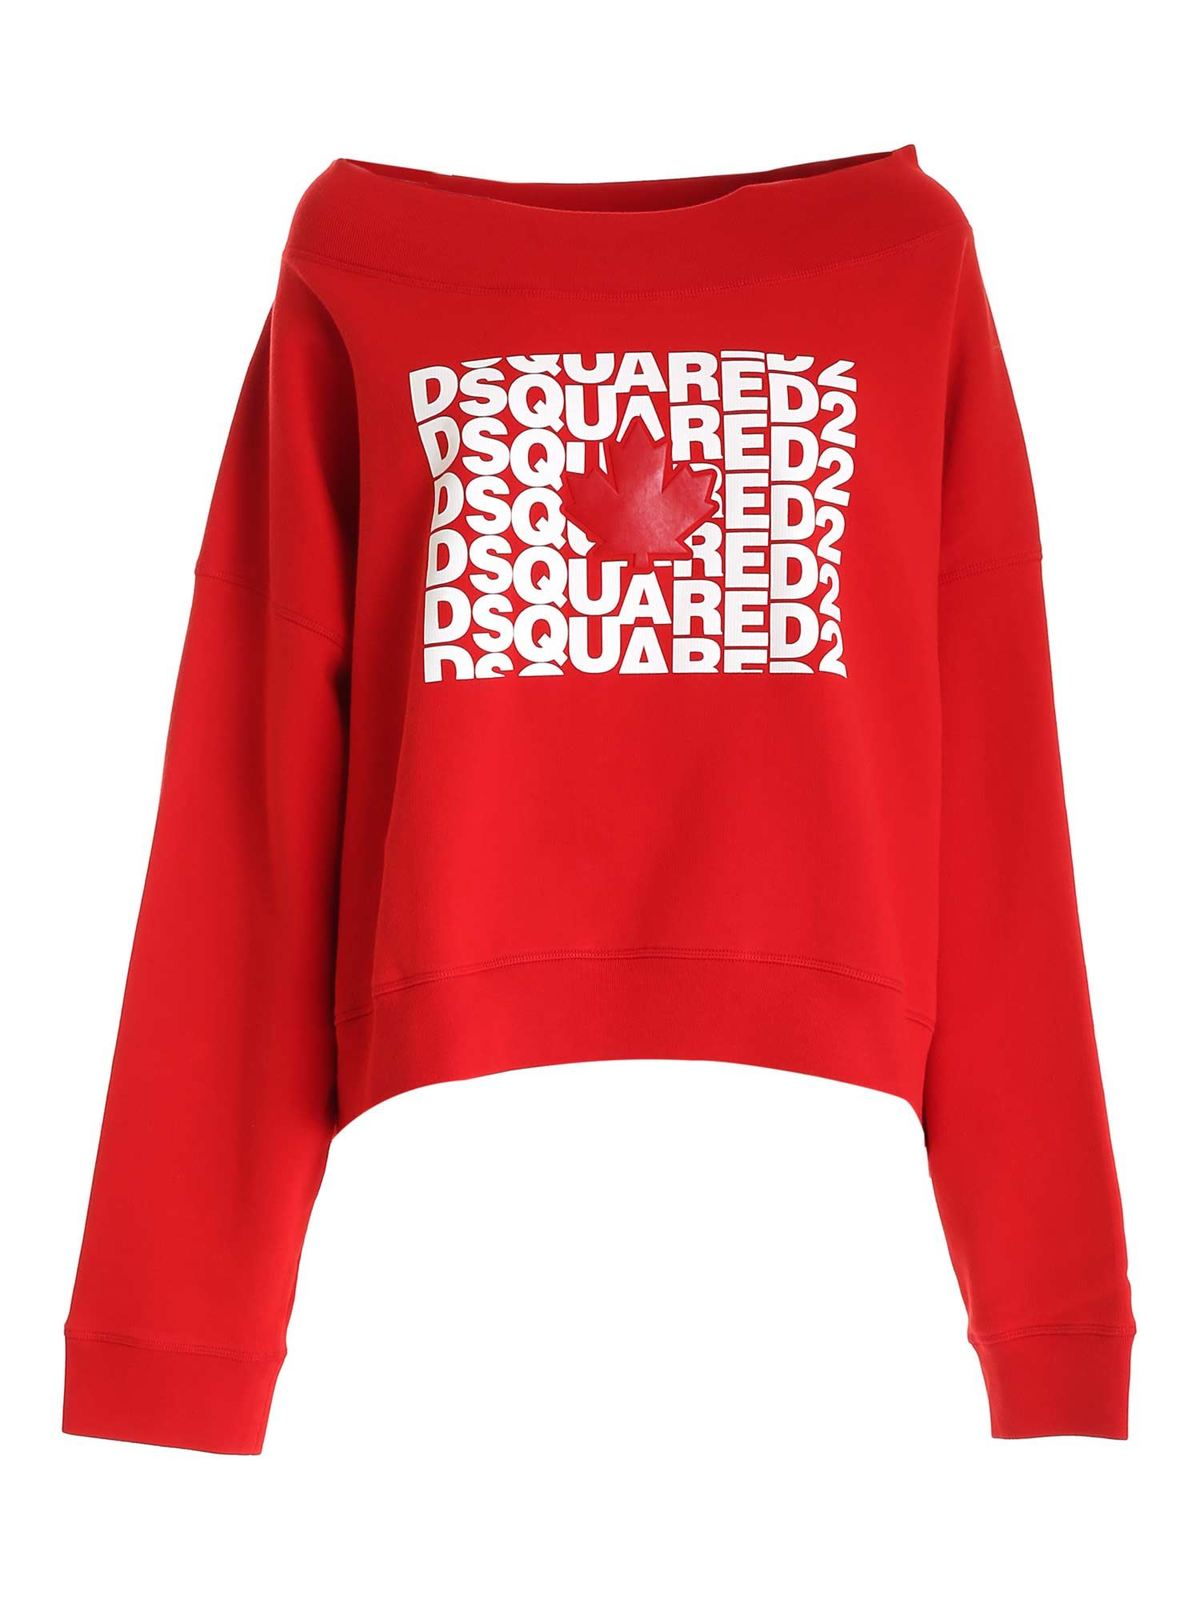 Dsquared2 Cottons OVERSIZED LOGO SWEATSHIRT IN RED